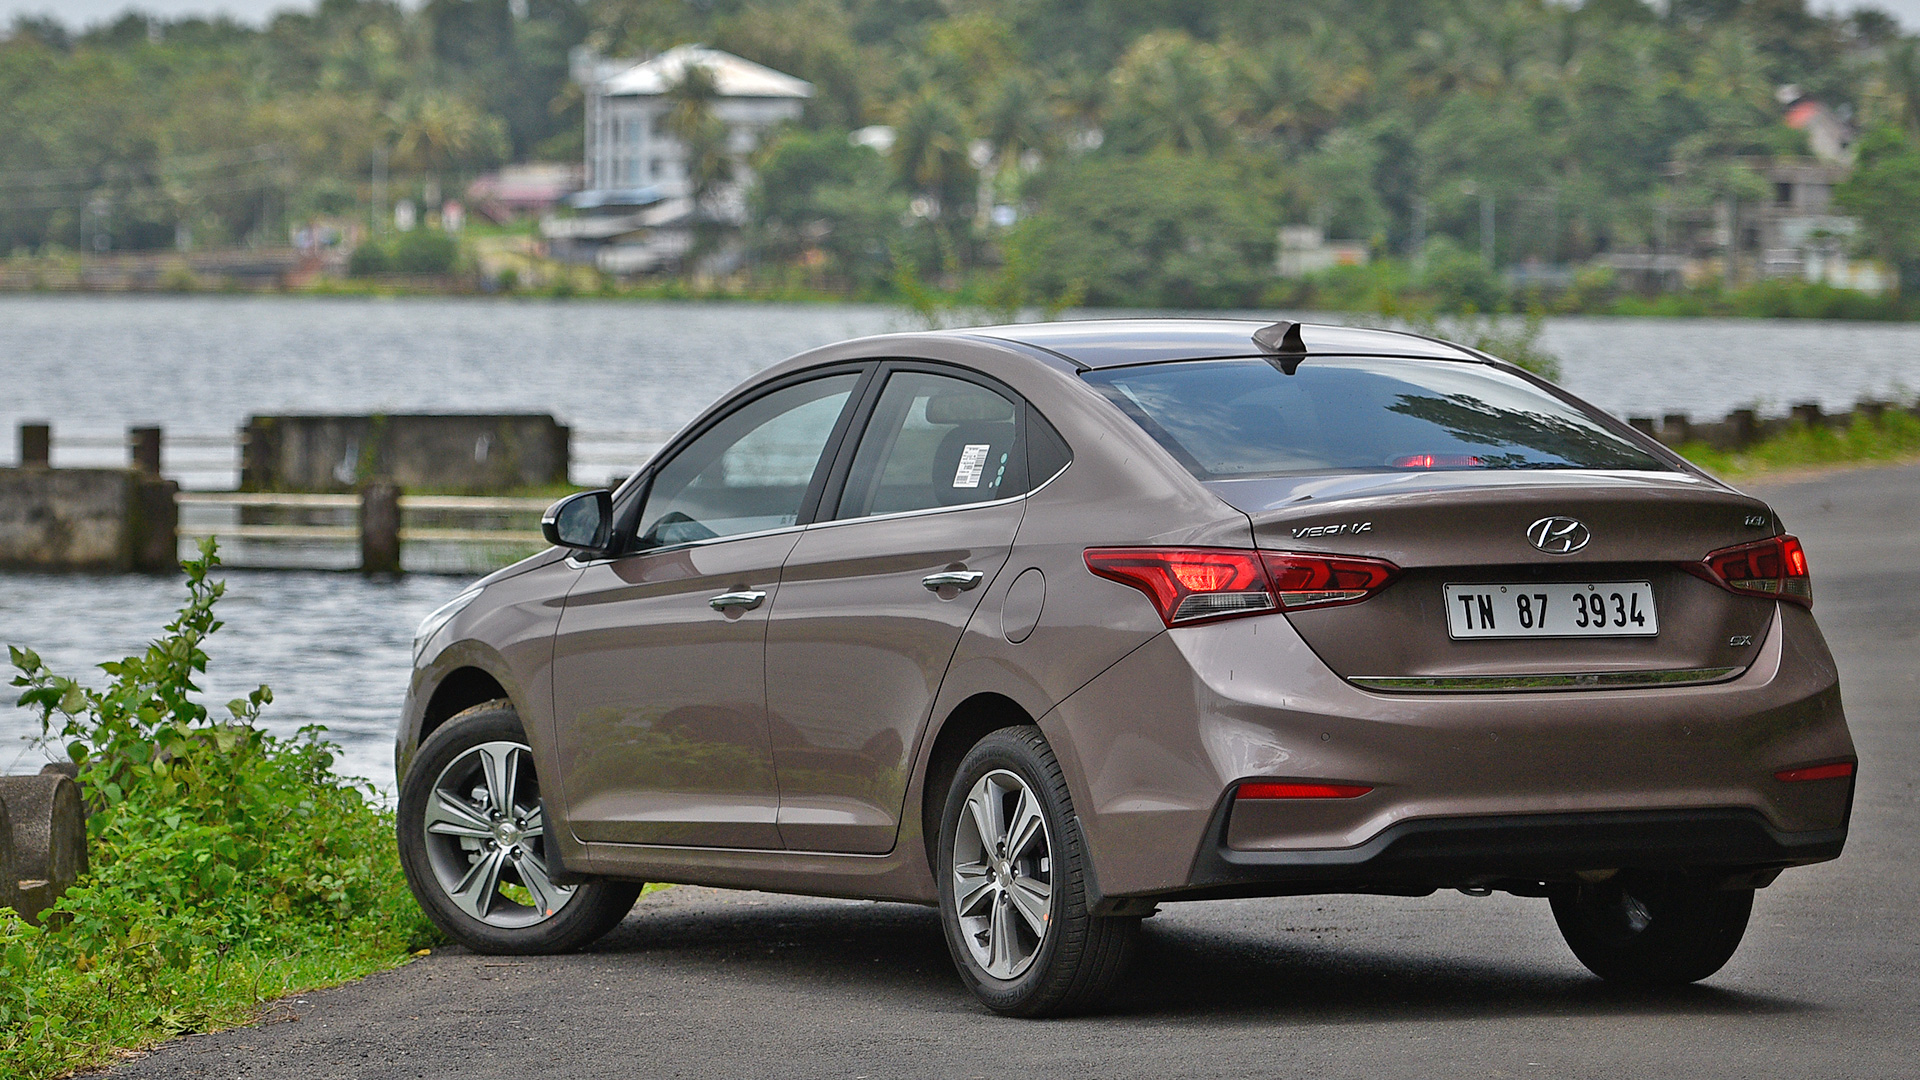 Yaris 2017 Review >> Hyundai Verna 2018 - Price, Mileage, Reviews, Specification, Gallery - Overdrive